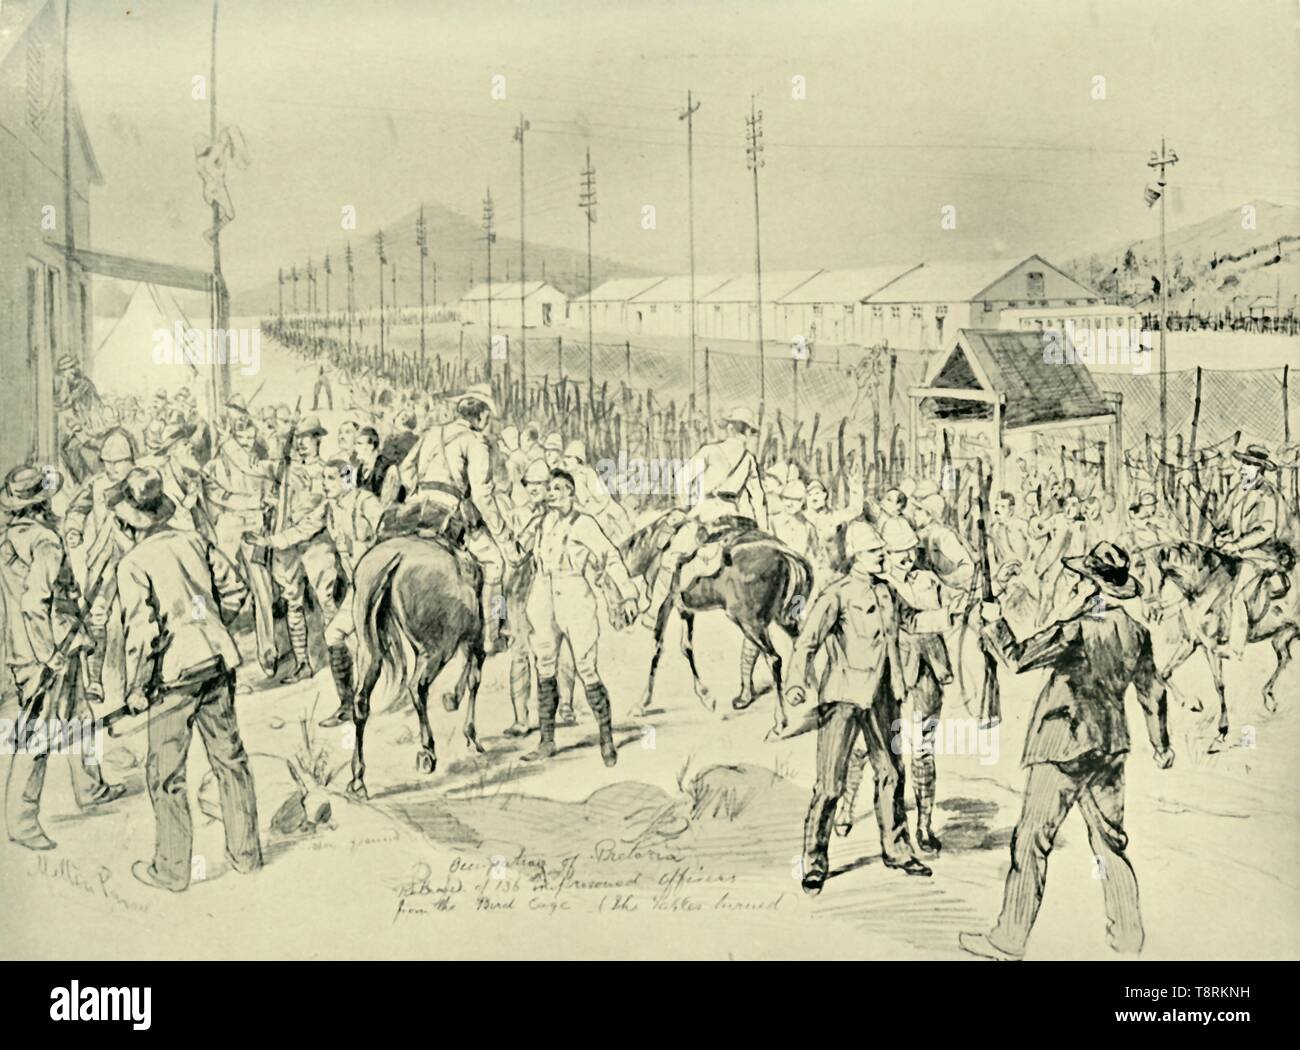 'The Occupation of Pretoria: Release of British Officers', (1901). Creator: Melton Prior. - Stock Image